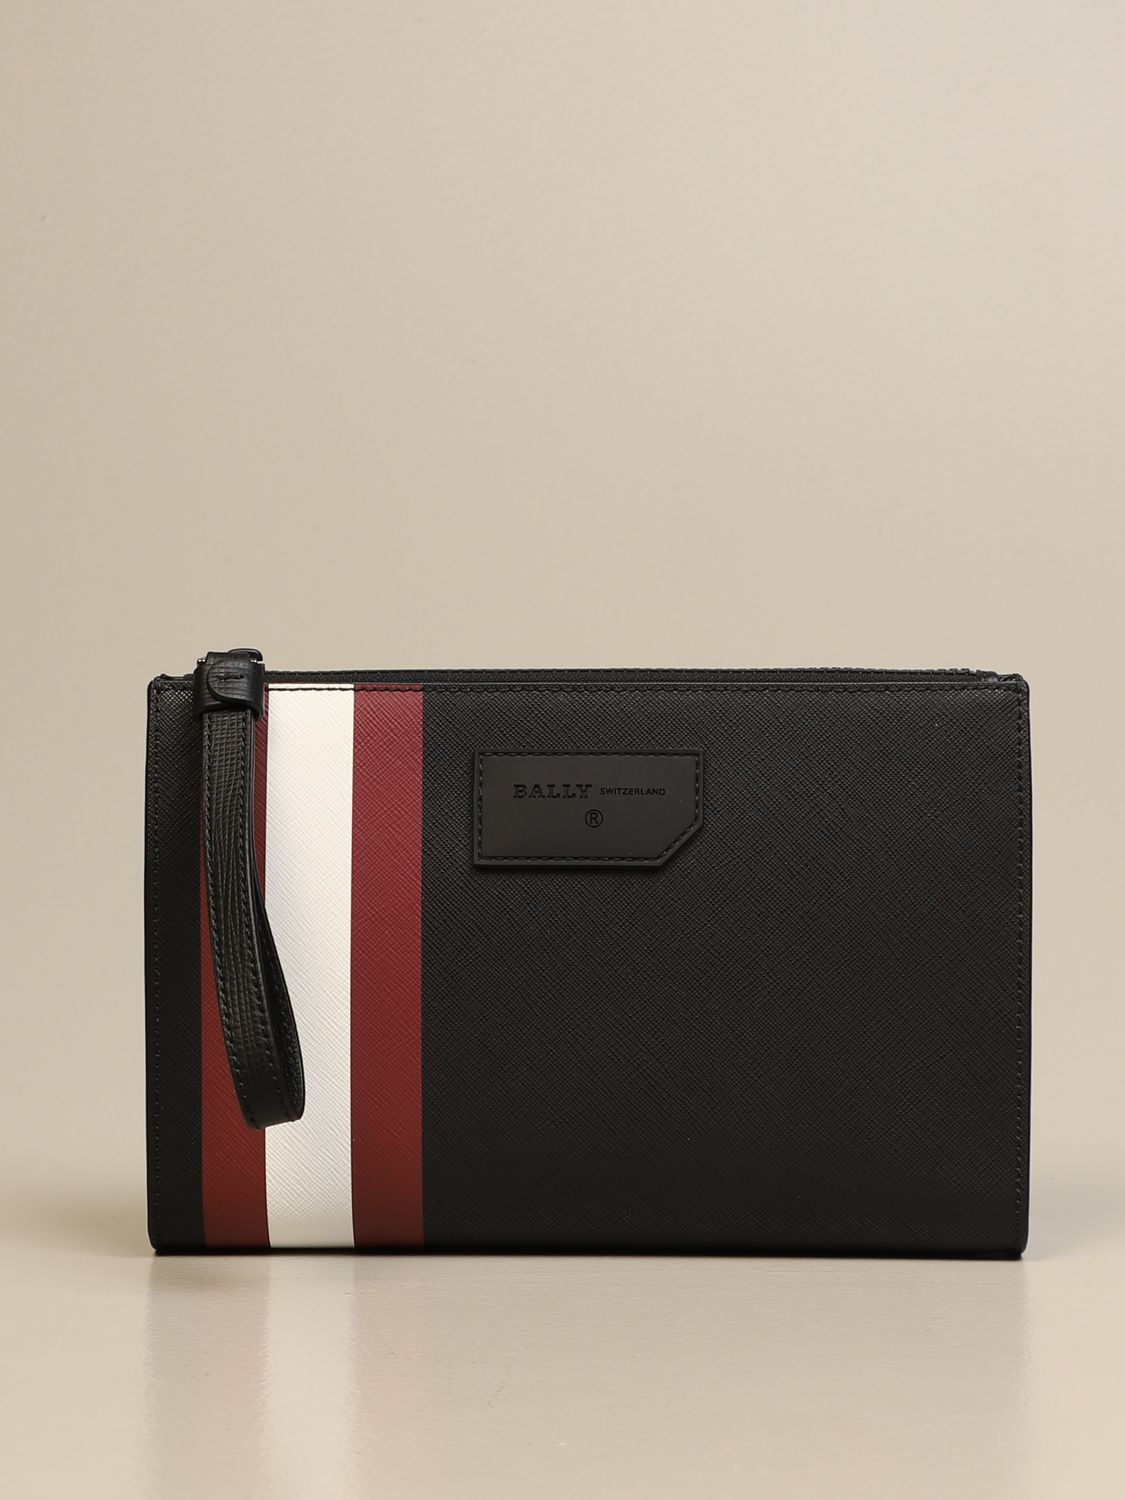 Briefcase Bally: Skid Bally clutch bag in coated canvas with trainspotting black 1 1